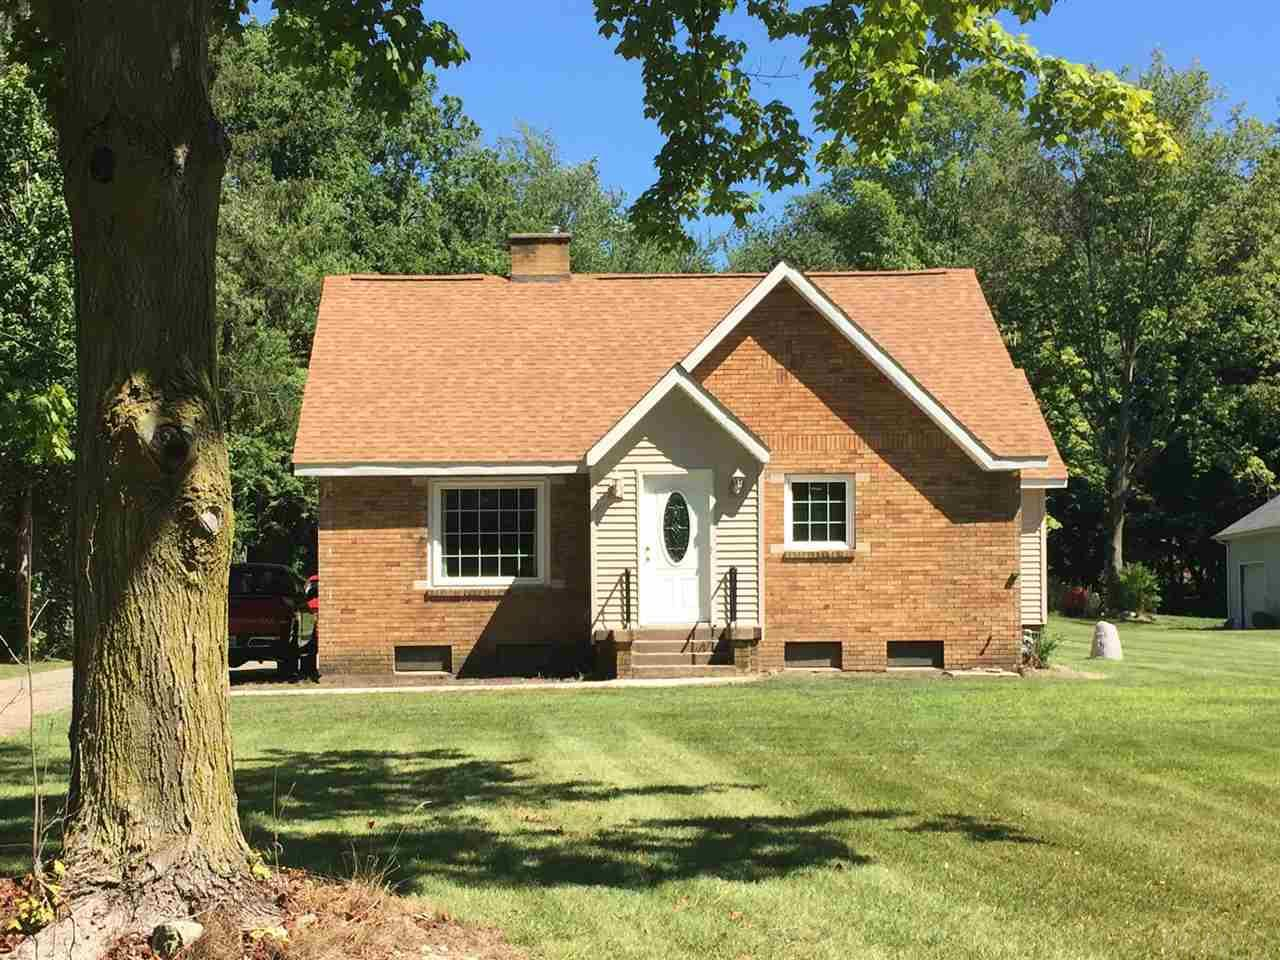 17651 Ireland Rd, South Bend, IN 46614